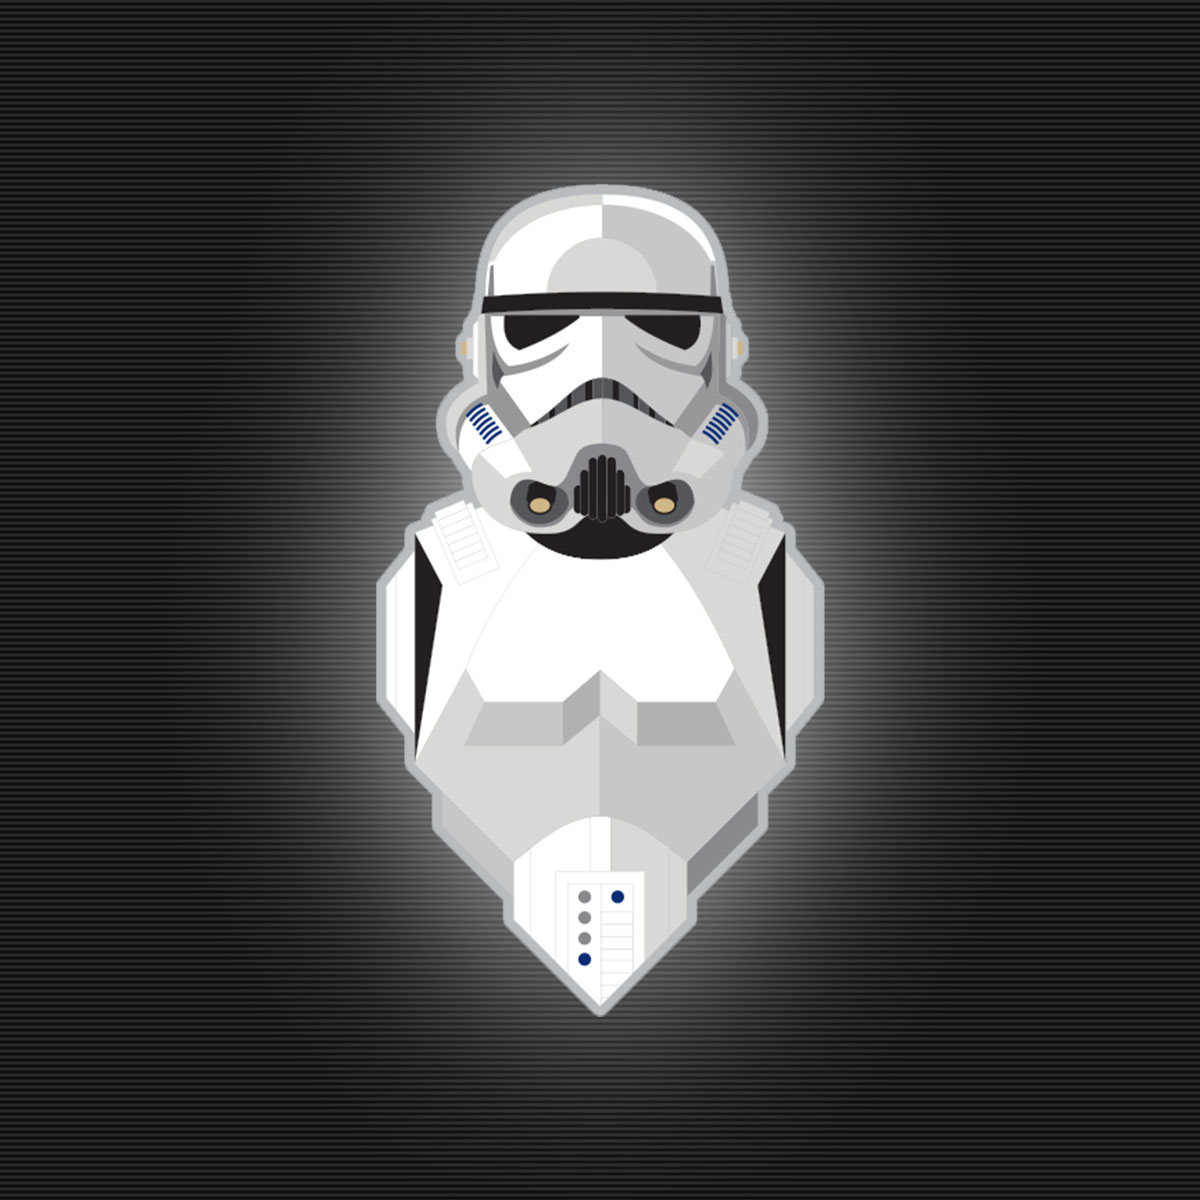 Star Wars Celebration stormtrooper pin